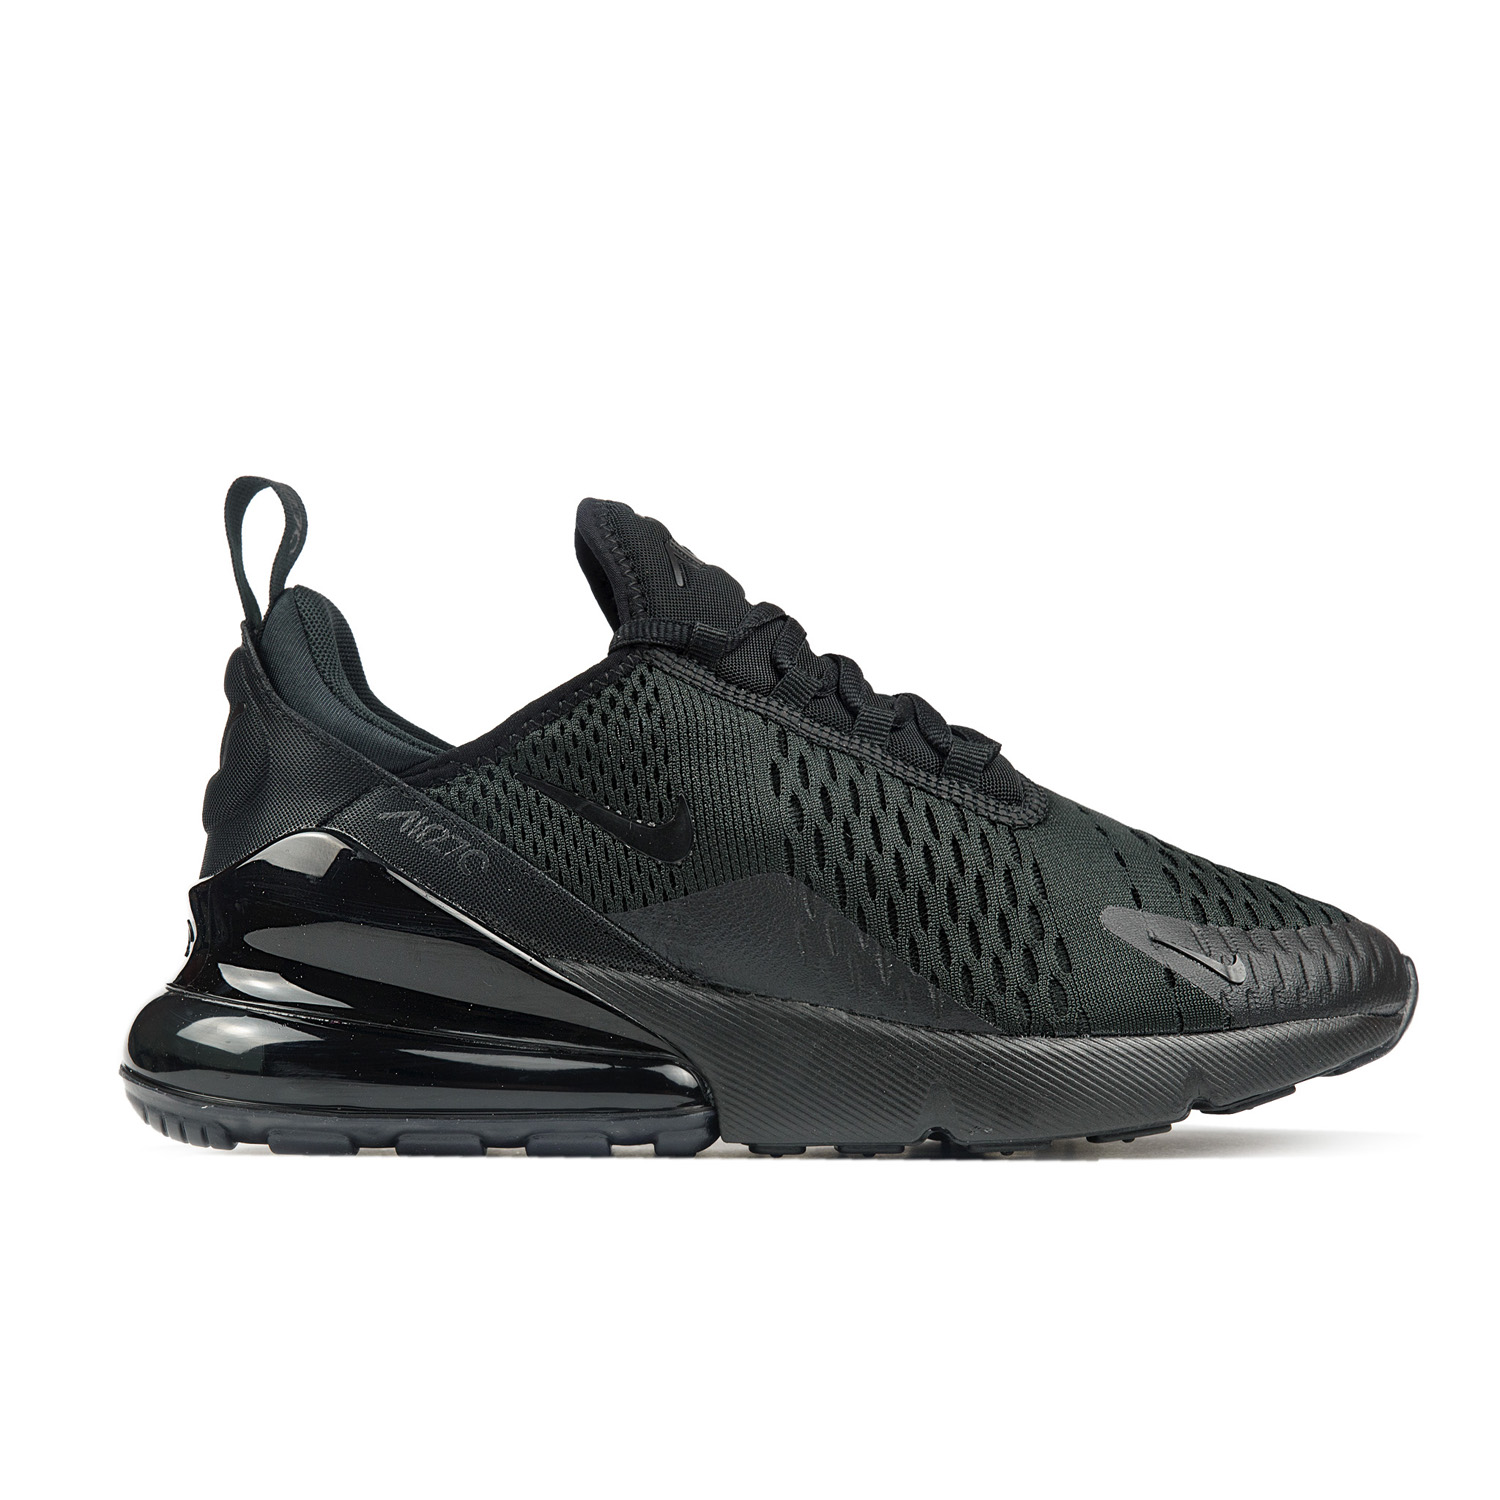 ELEVEN Nike Air Max 270